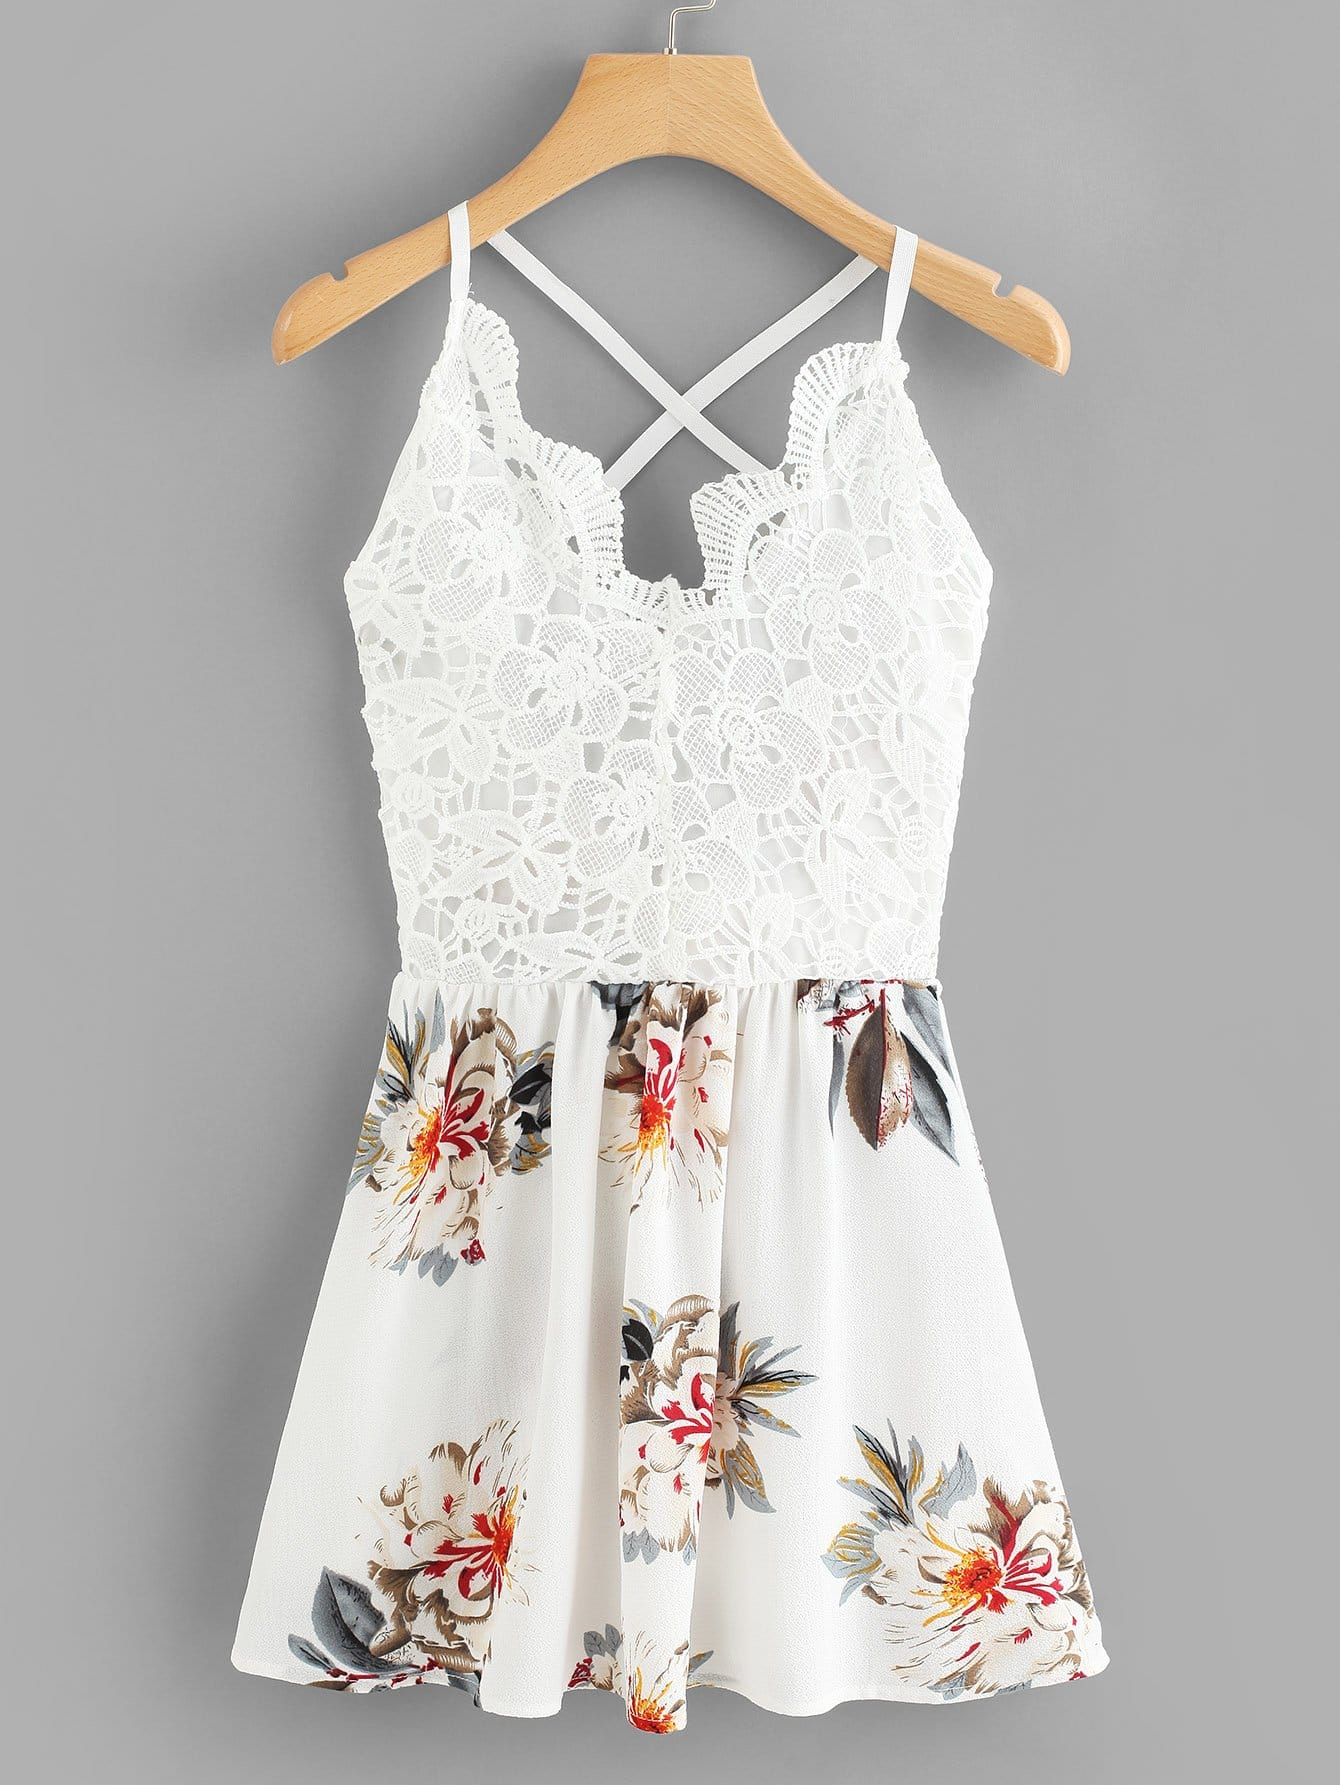 Floral Print Contrast Lace Cami Dress contrast lace knot cami dress